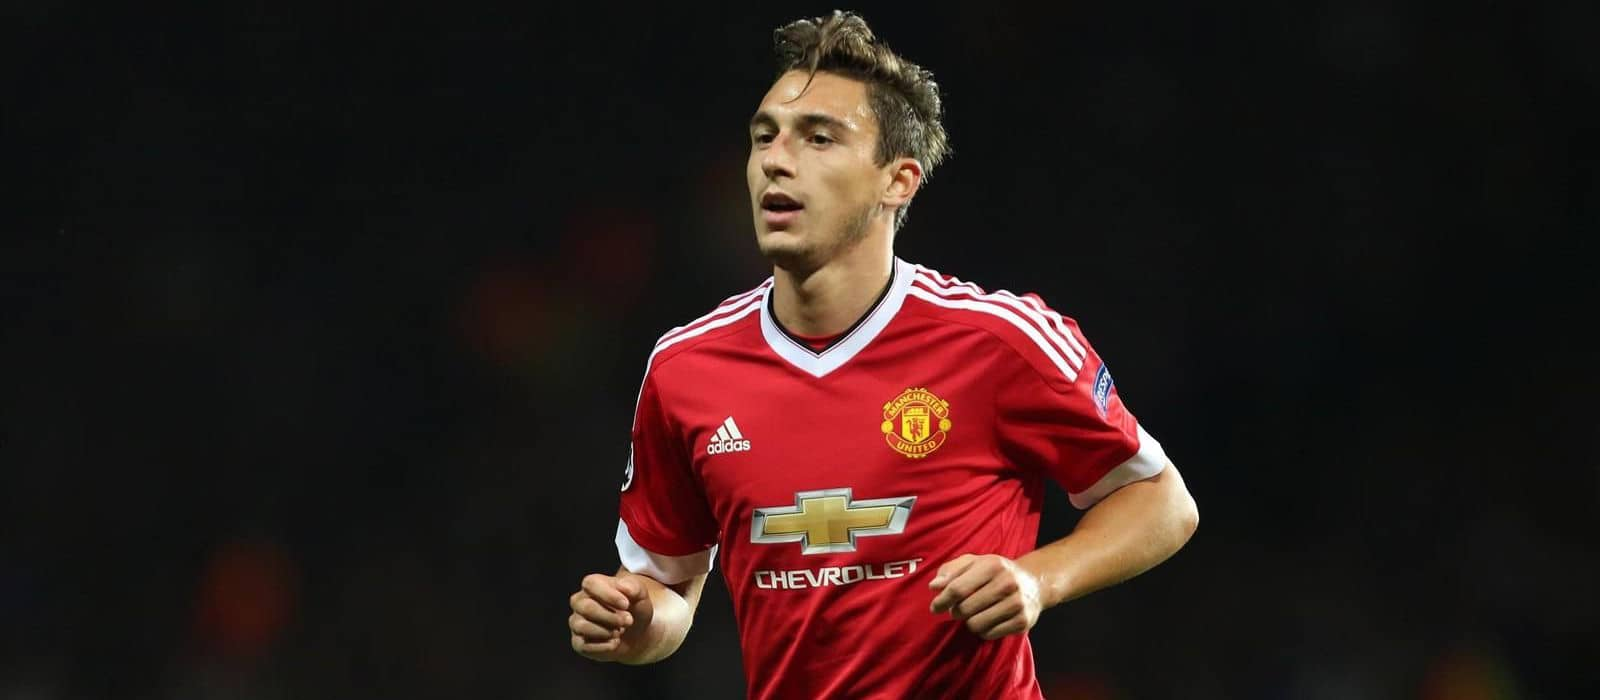 Matteo Darmian in Italy ahead of transfer deadline day on Friday